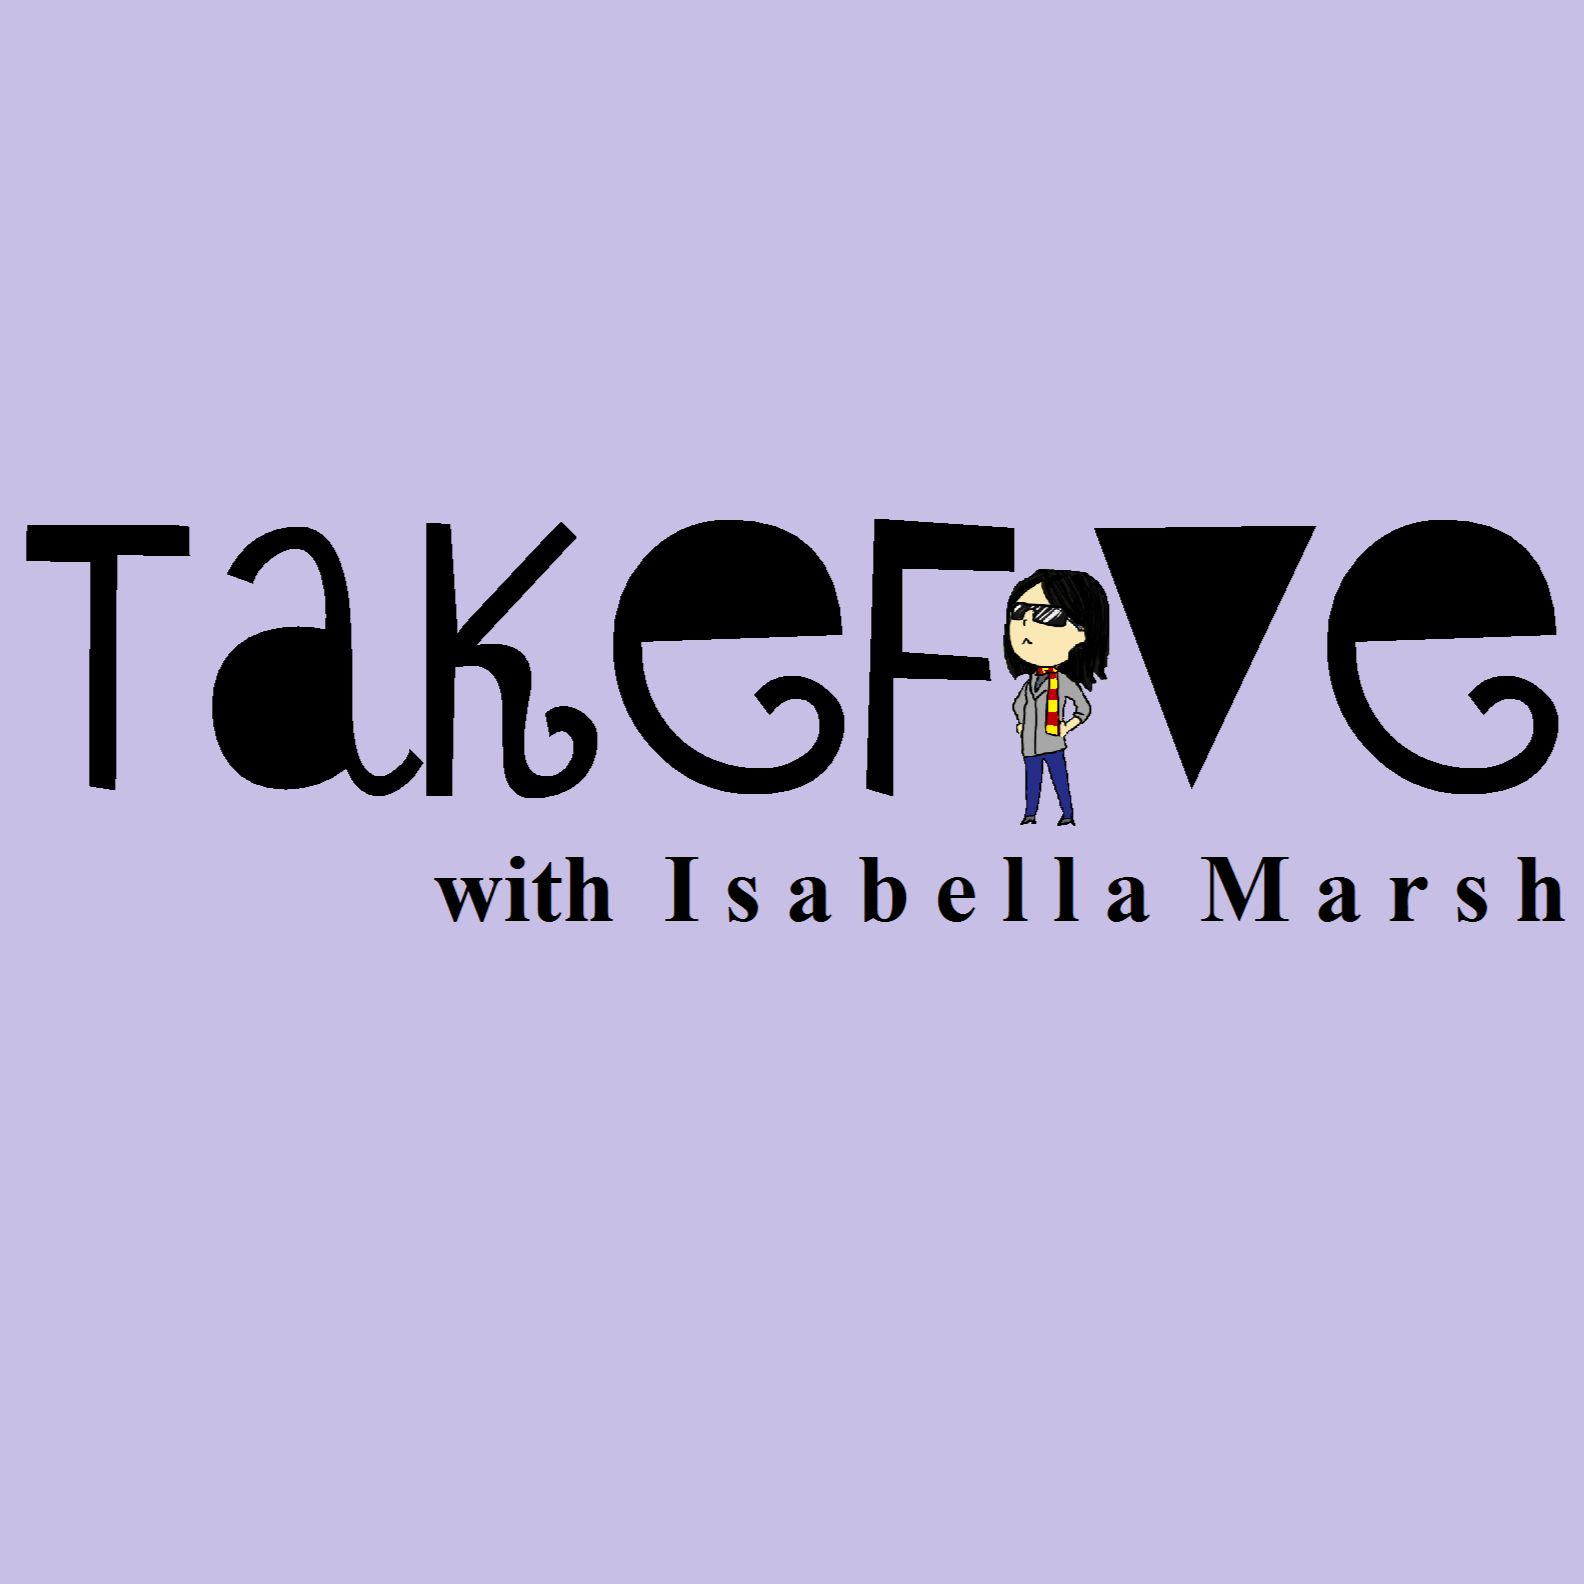 TAKE5 with Isabella Marsh